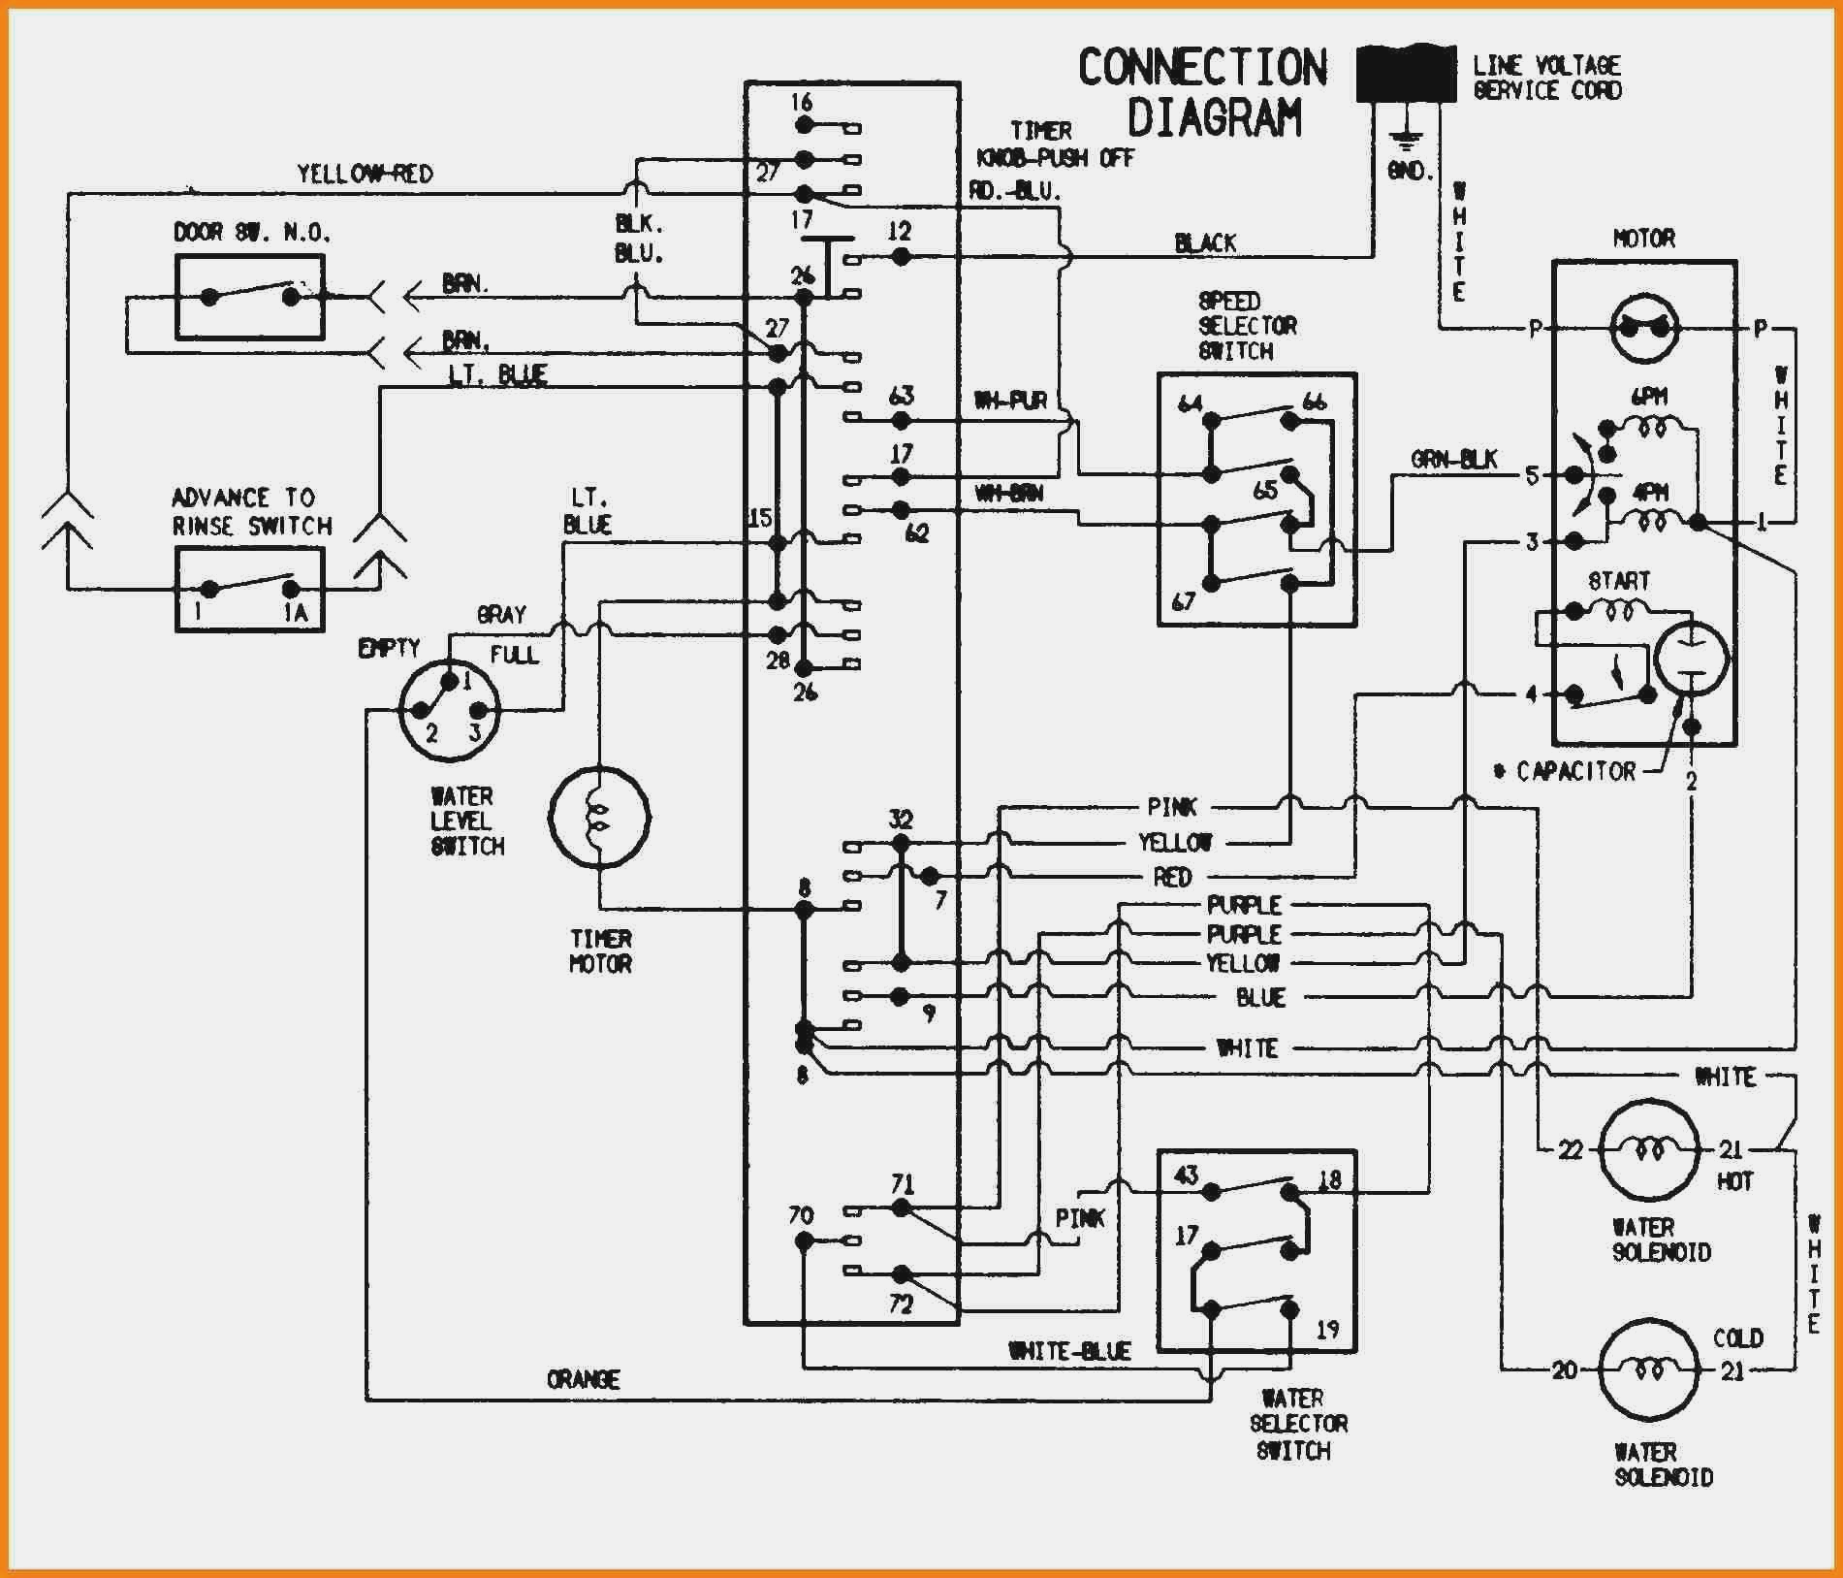 New Wiring Diagram Ac Sharp Inverter Diagram Diagramtemplate Diagramsample Check More At Htt Washing Machine Motor Circuit Diagram Washing Machine Whirlpool